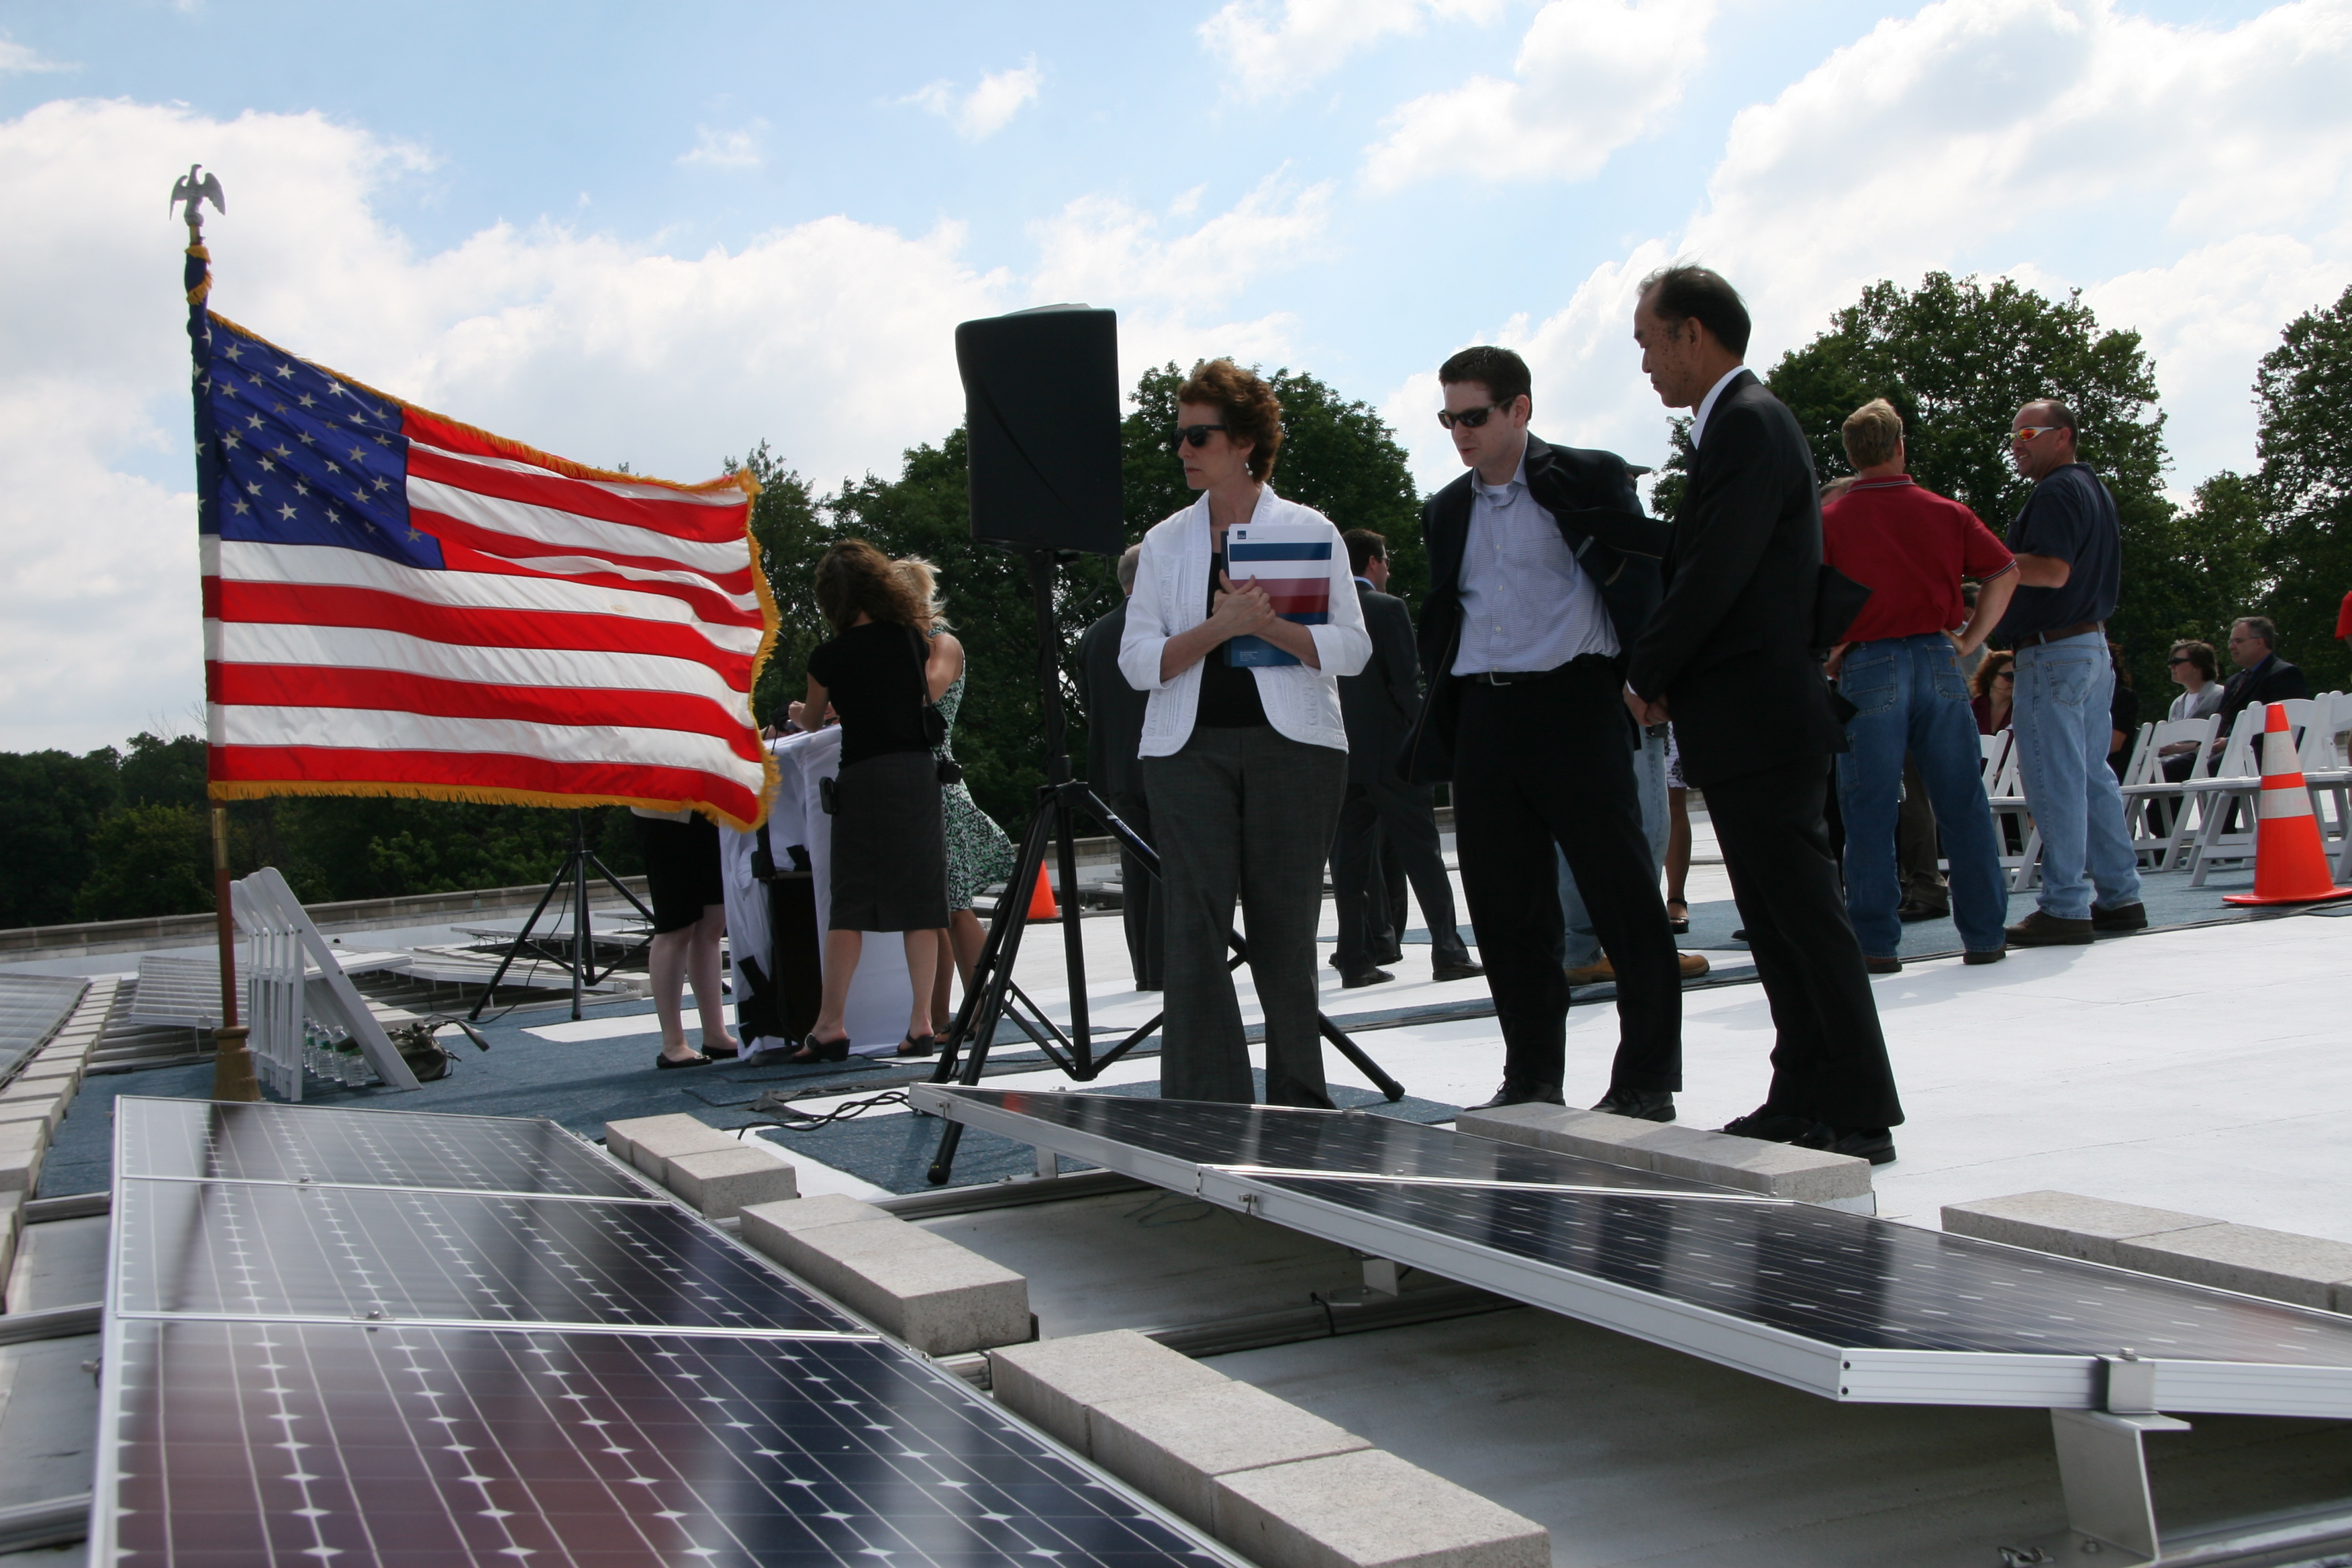 GSA Administrator Martha Johnson and Solar Panels at Philadelphia Veterans Affairs Regional Office and Information Center